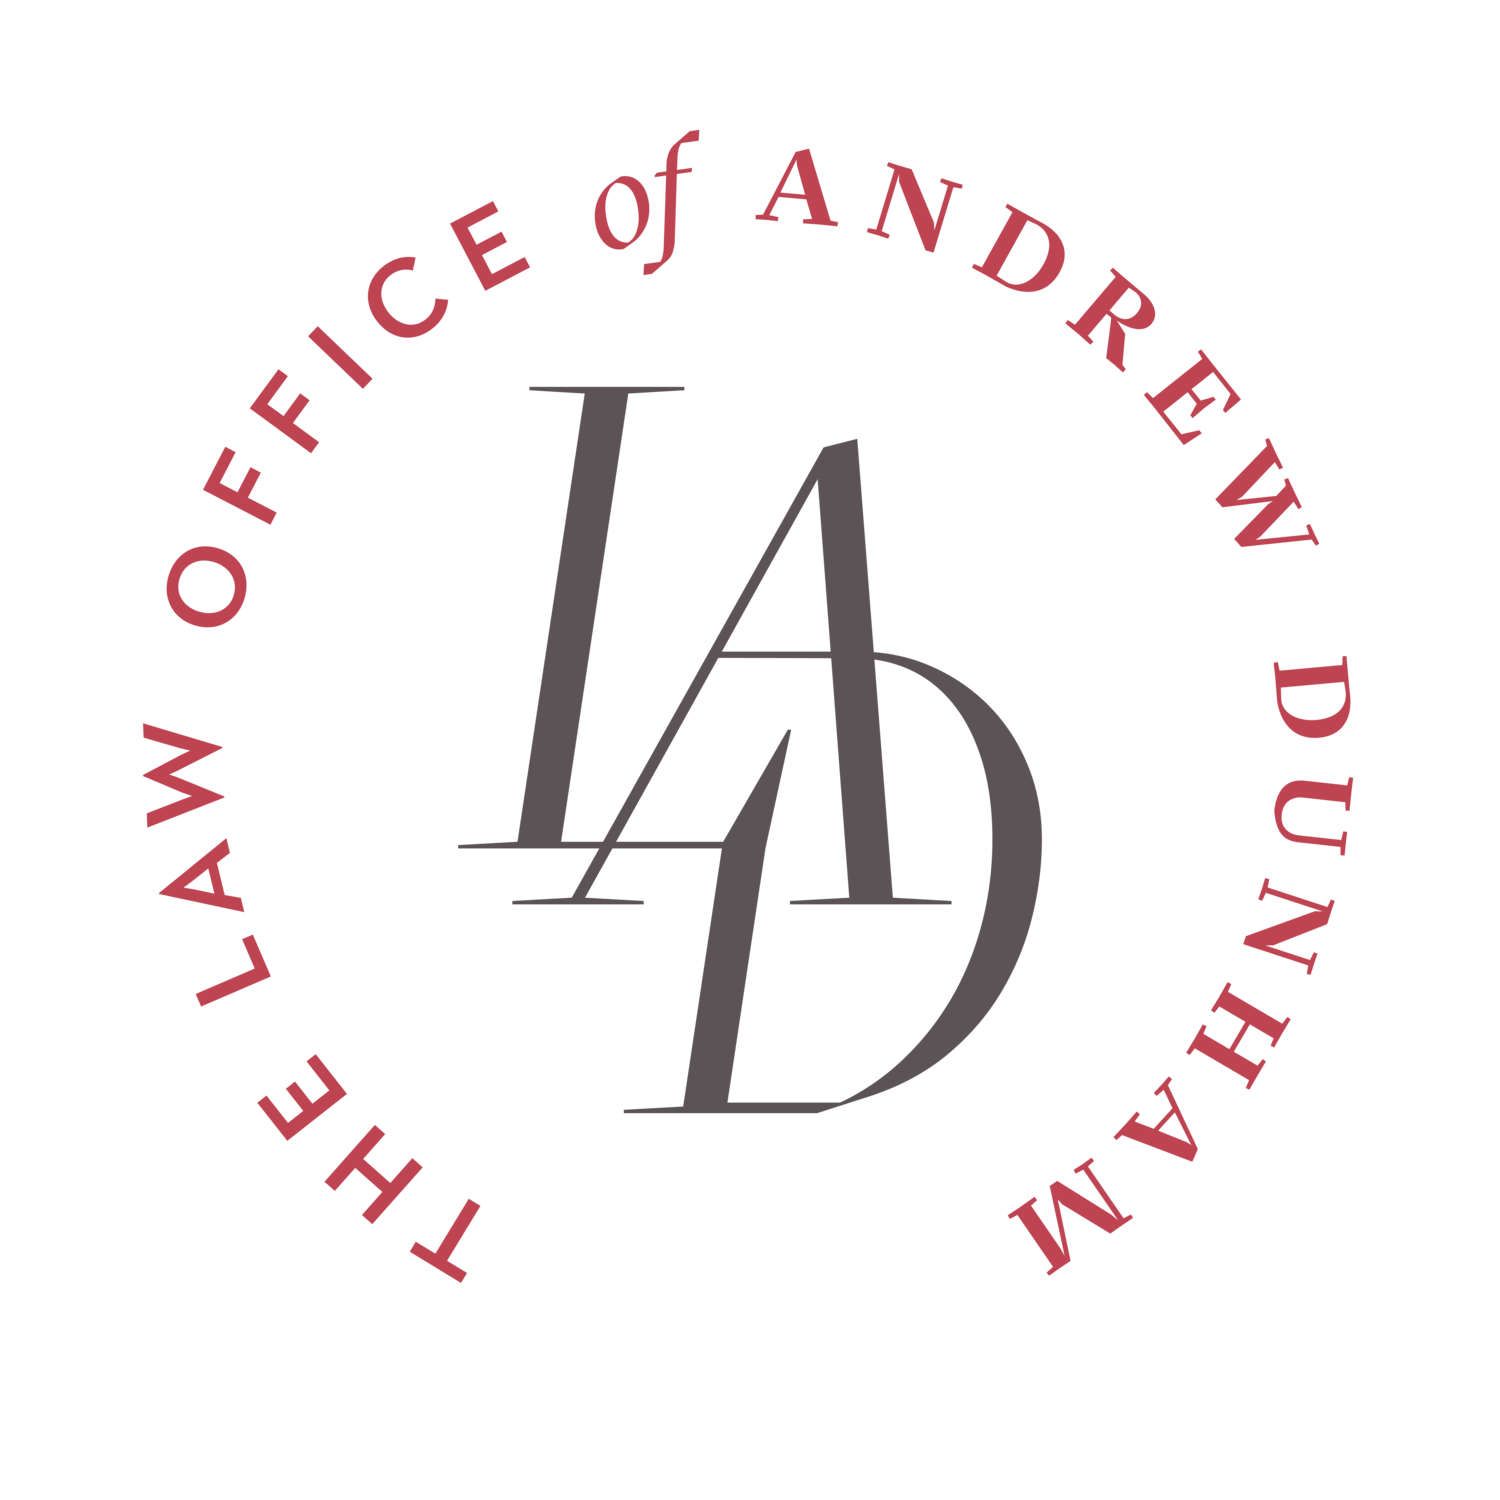 The Law Office of Andrew Dunham